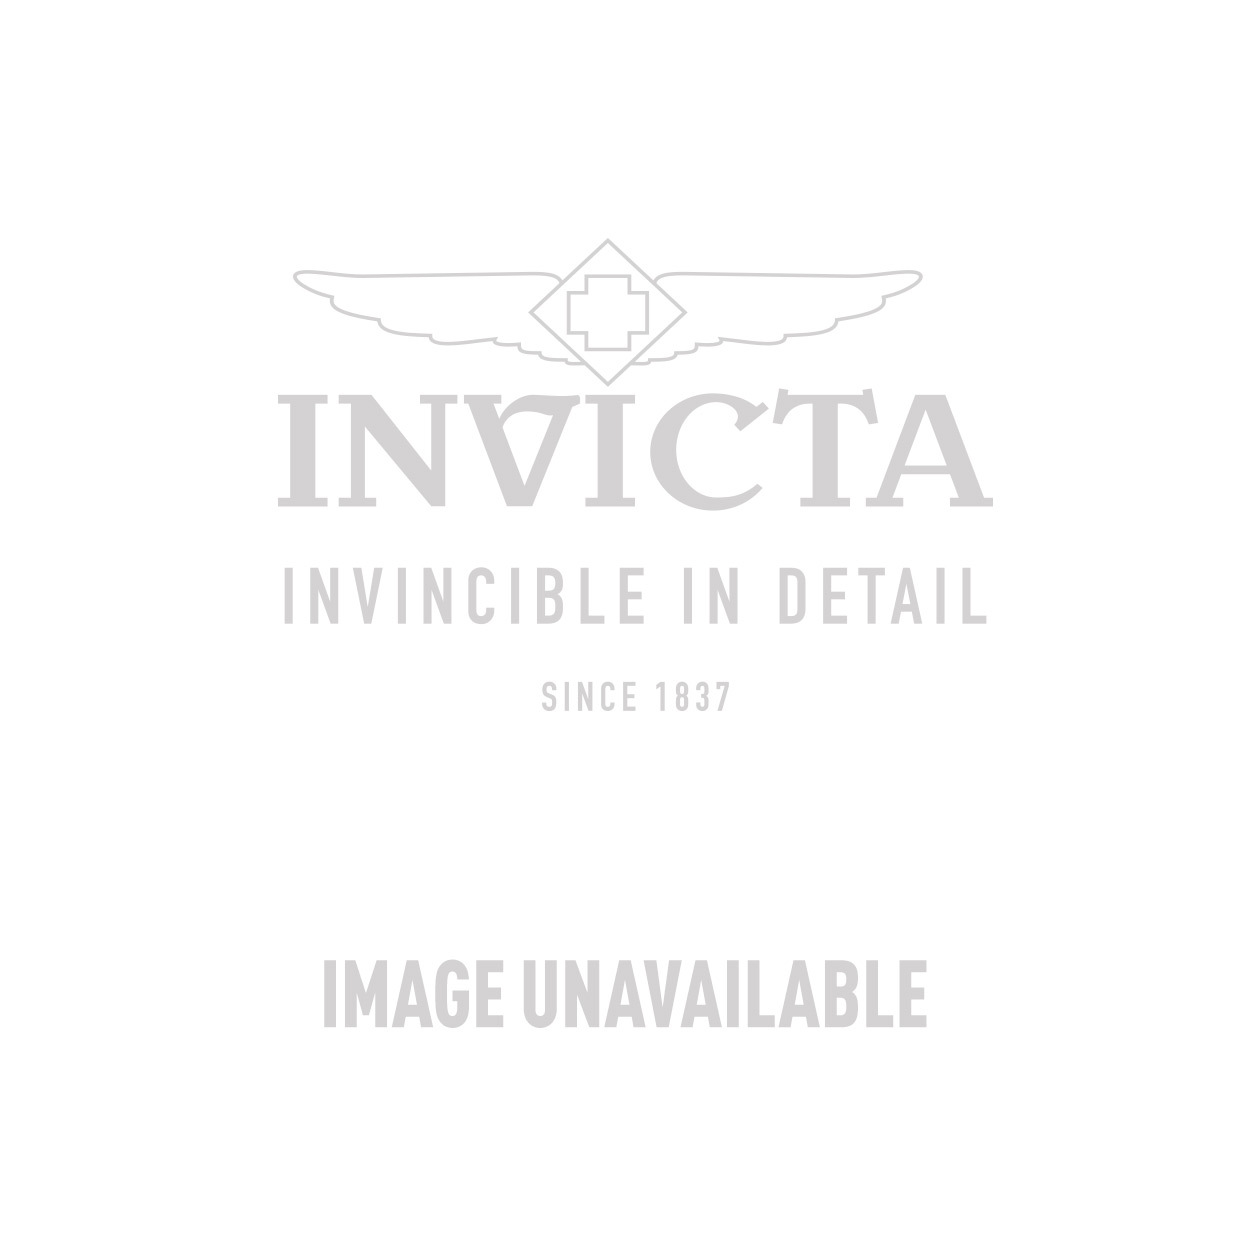 Invicta Angel Swiss Movement Quartz Watch - Stainless Steel case with Steel, White tone Plastic, Metal band - Model 18874